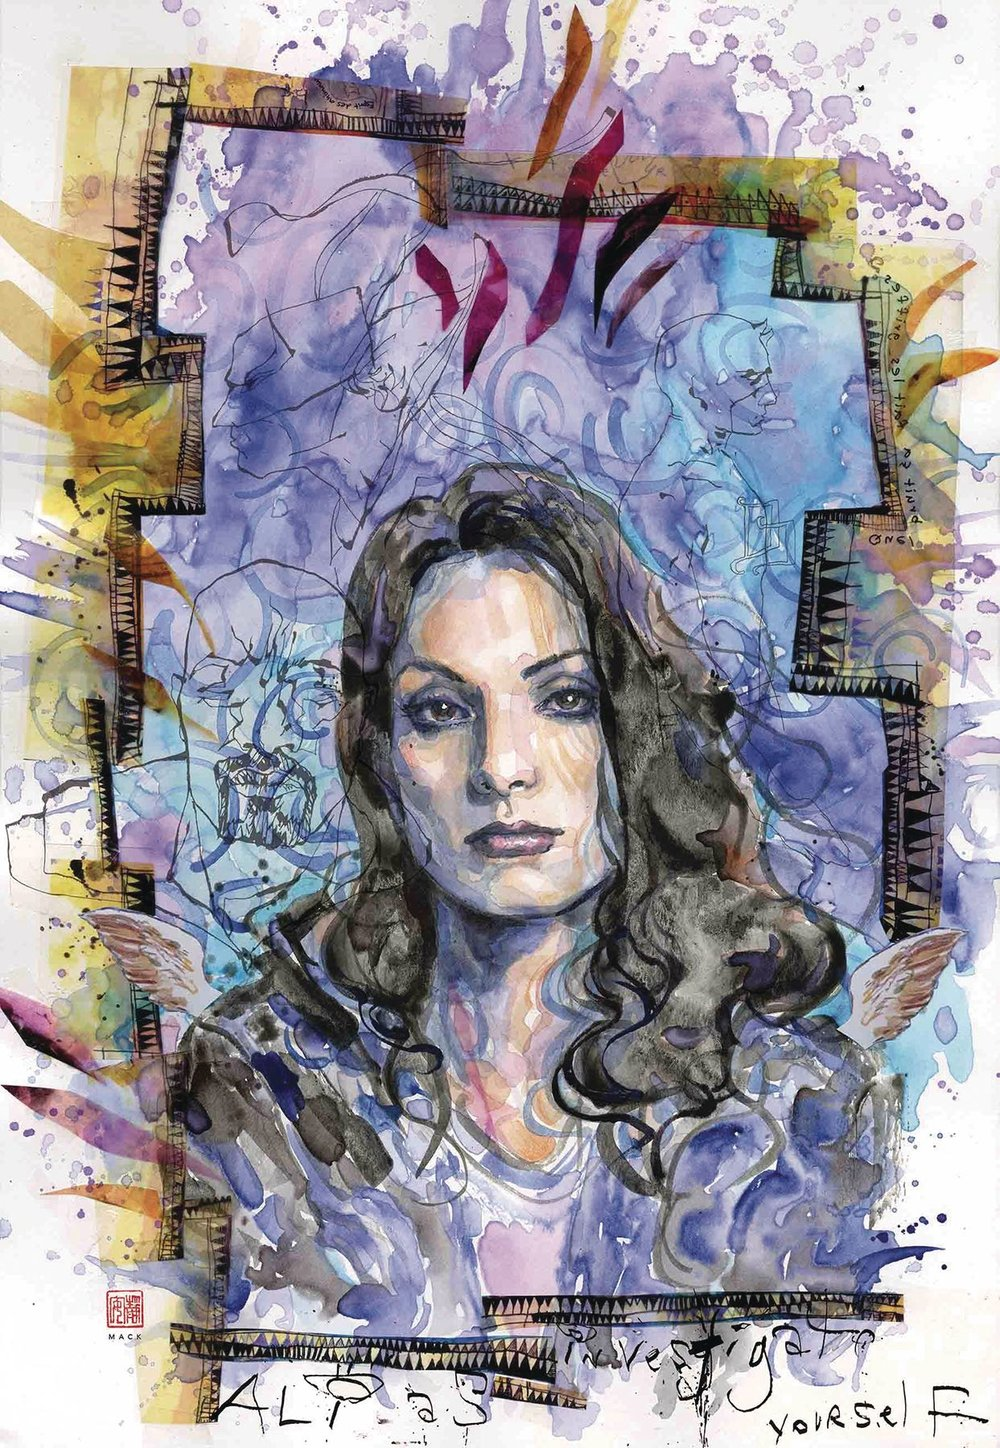 Episode 3 Cover of the Week! - (Marvel) Jessica Jones #11Cover by David MackWritten by Brian Michael BendisIllustrated by Michael GaydosDid the Content Match the Drapes? - UNR